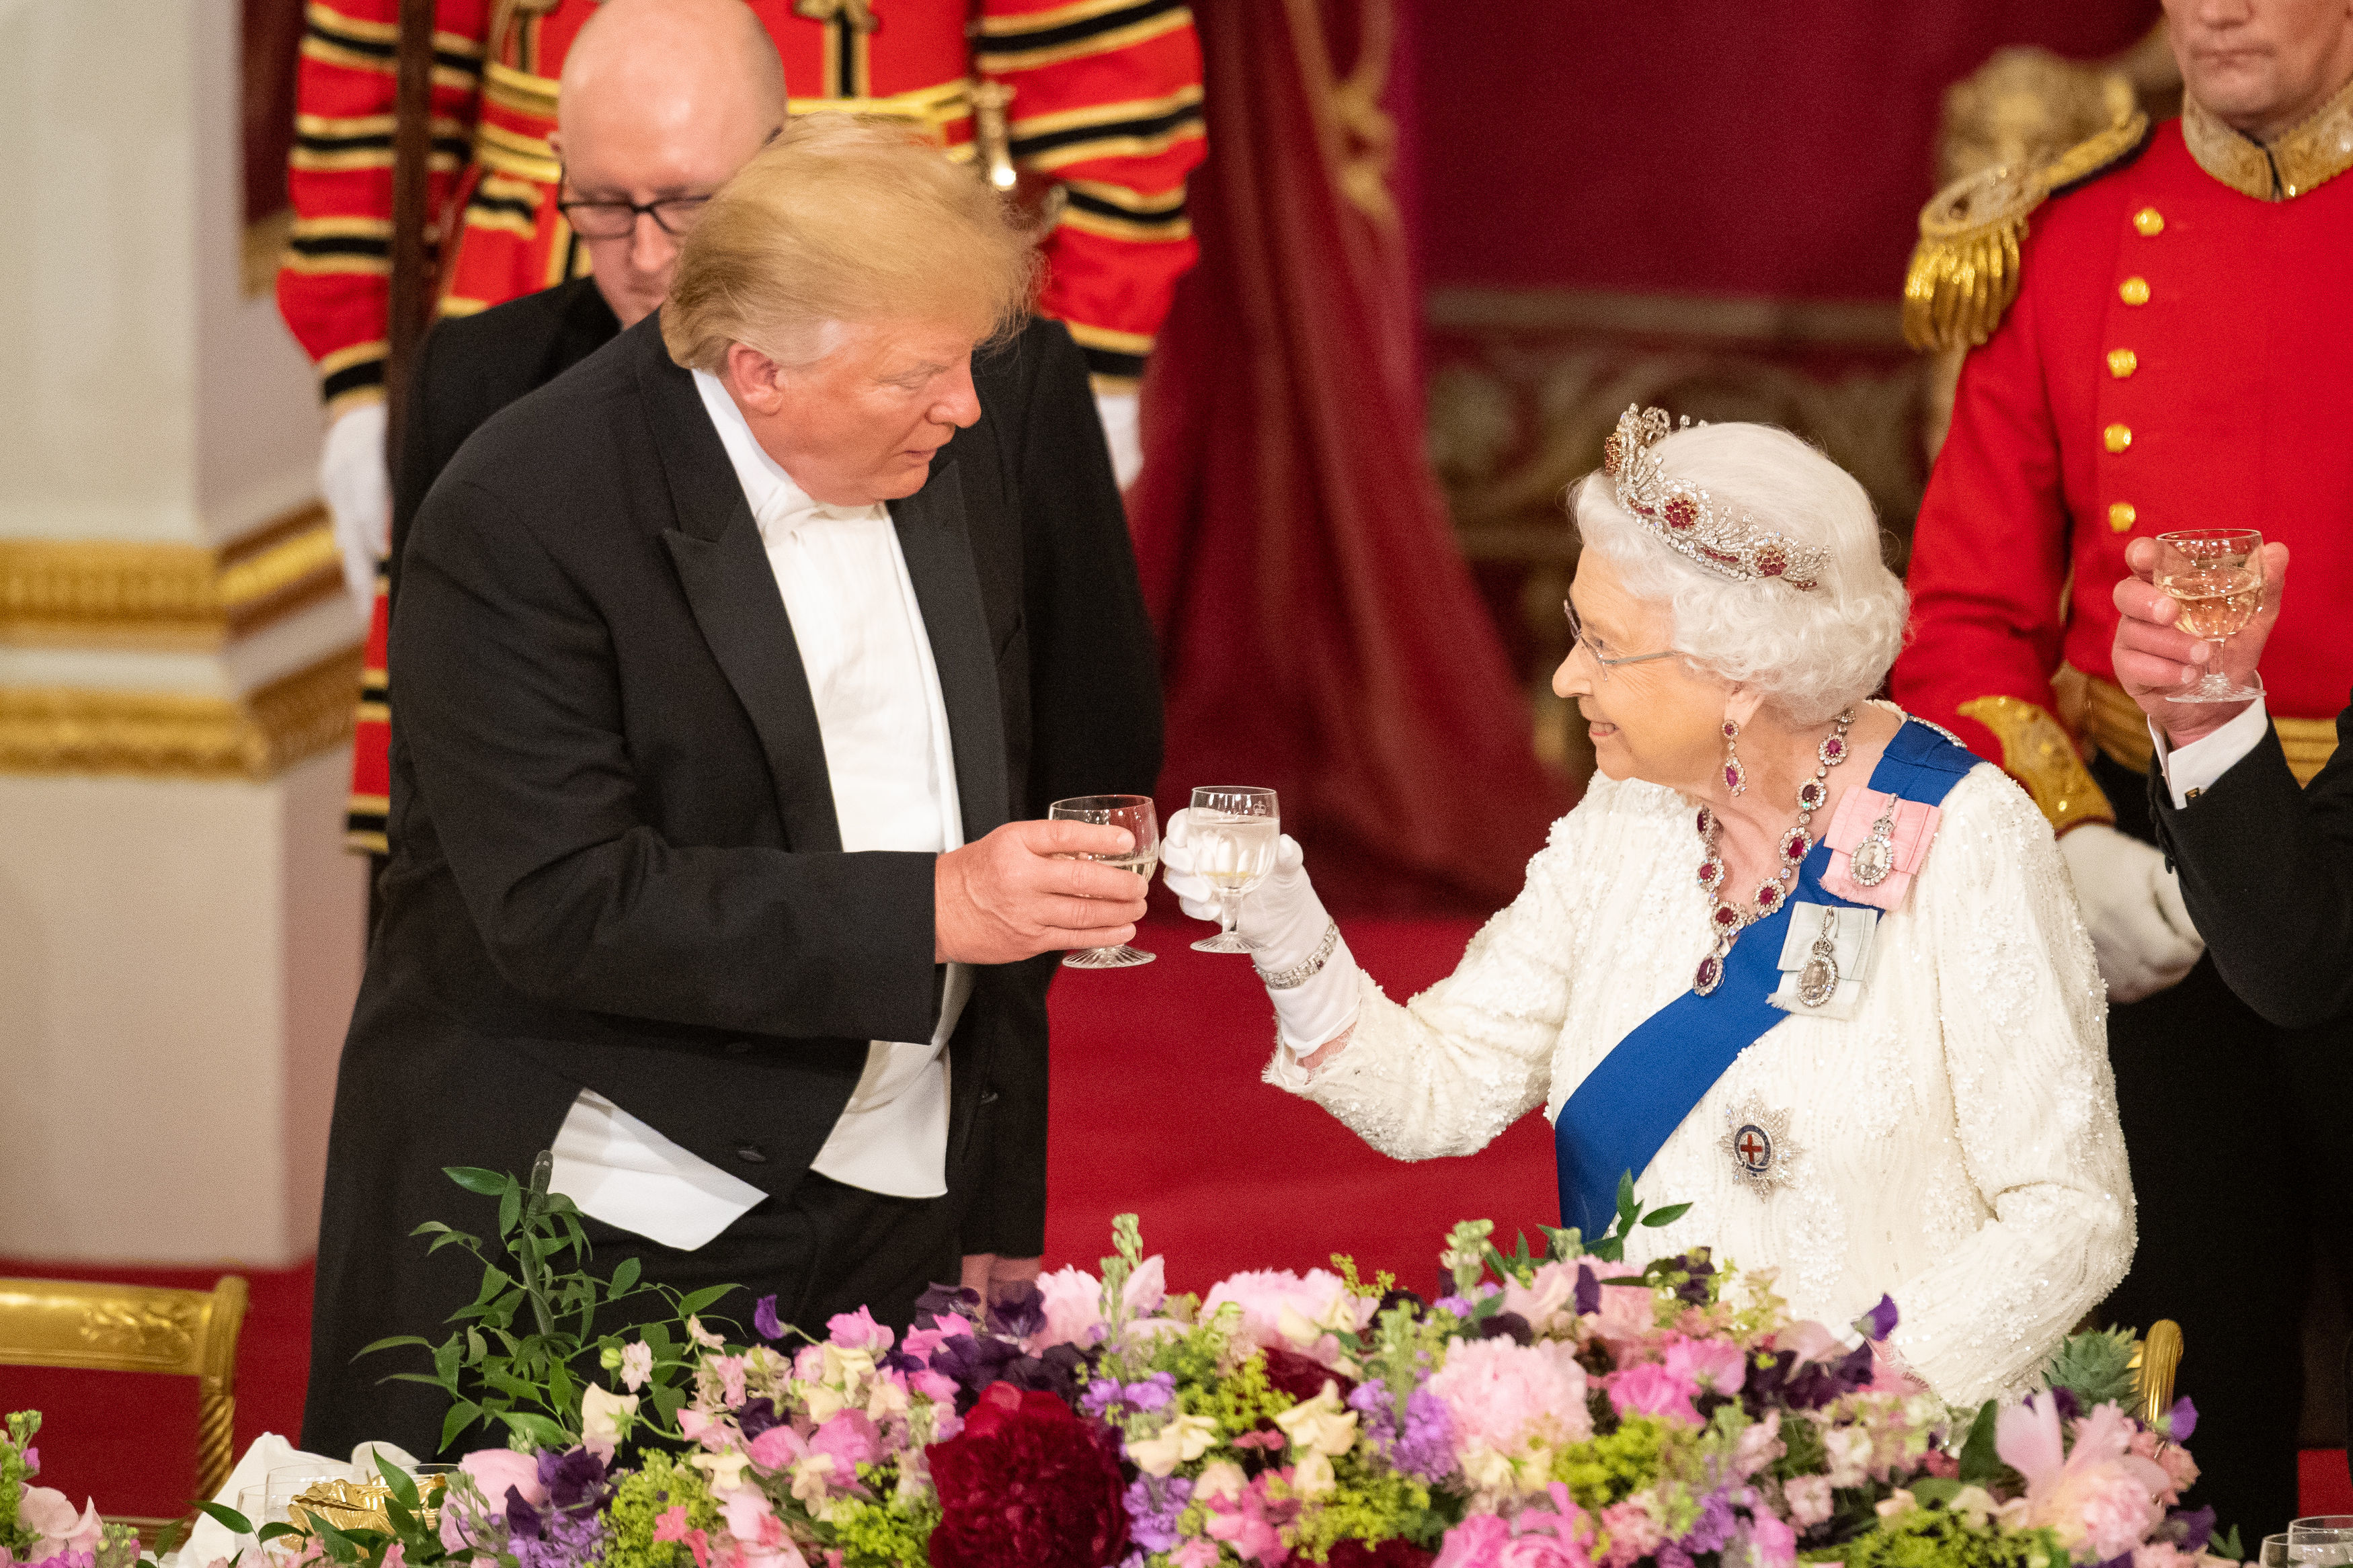 Mr Trump touches glasses with the Queen